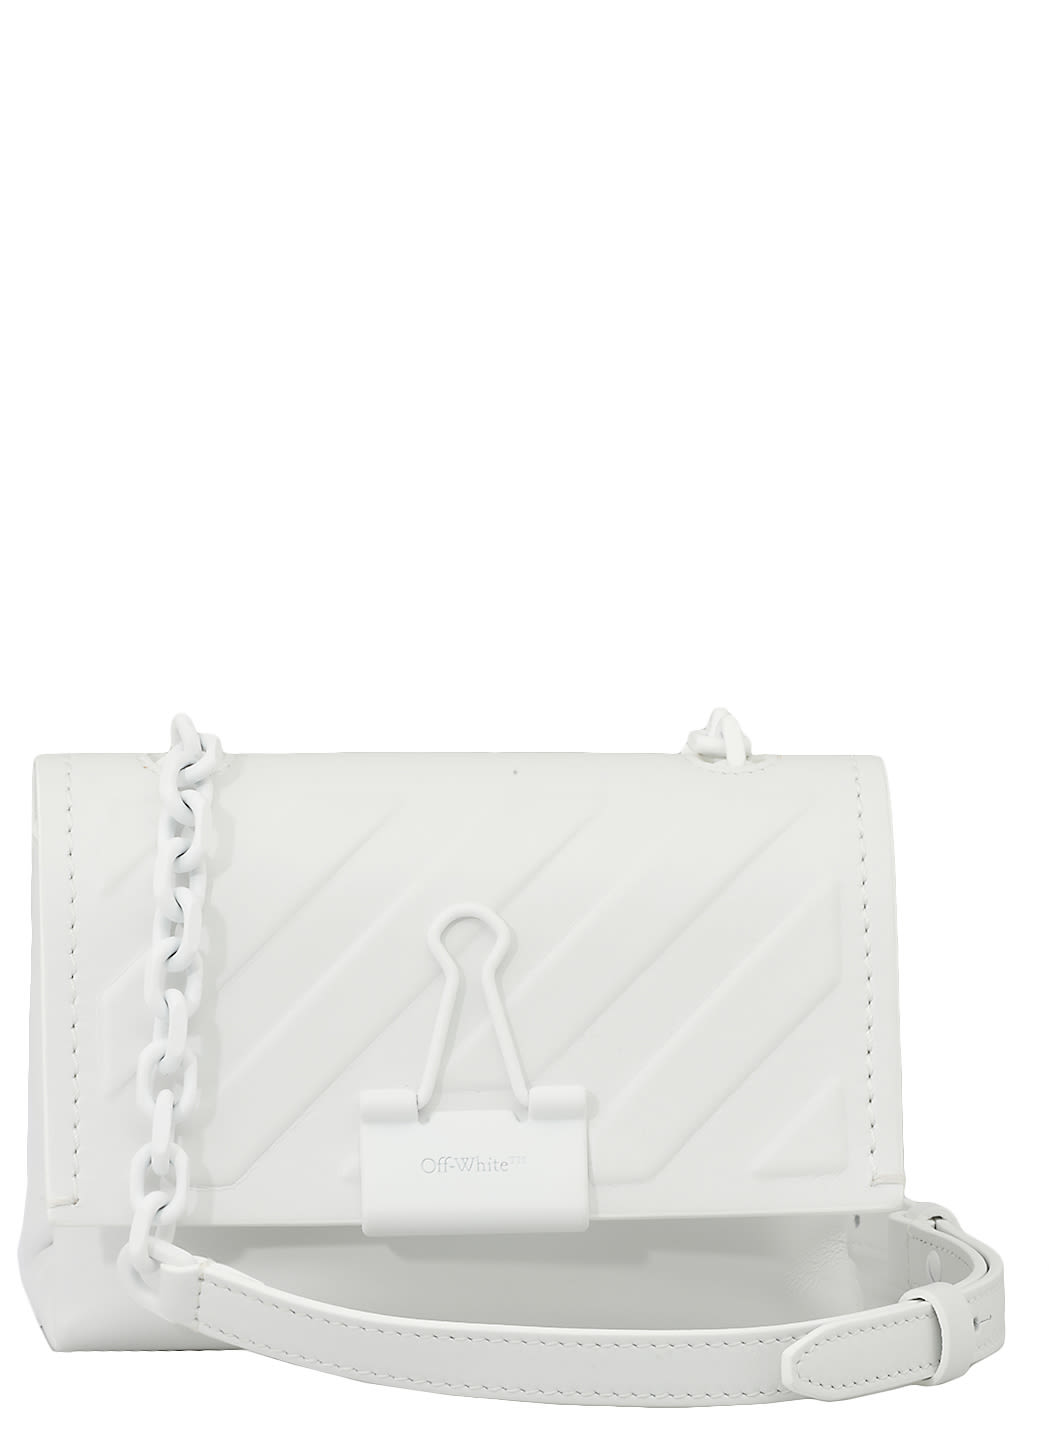 Off-White Leathers DIAG EMBOSSED SMALL BINDER CLIP BAG